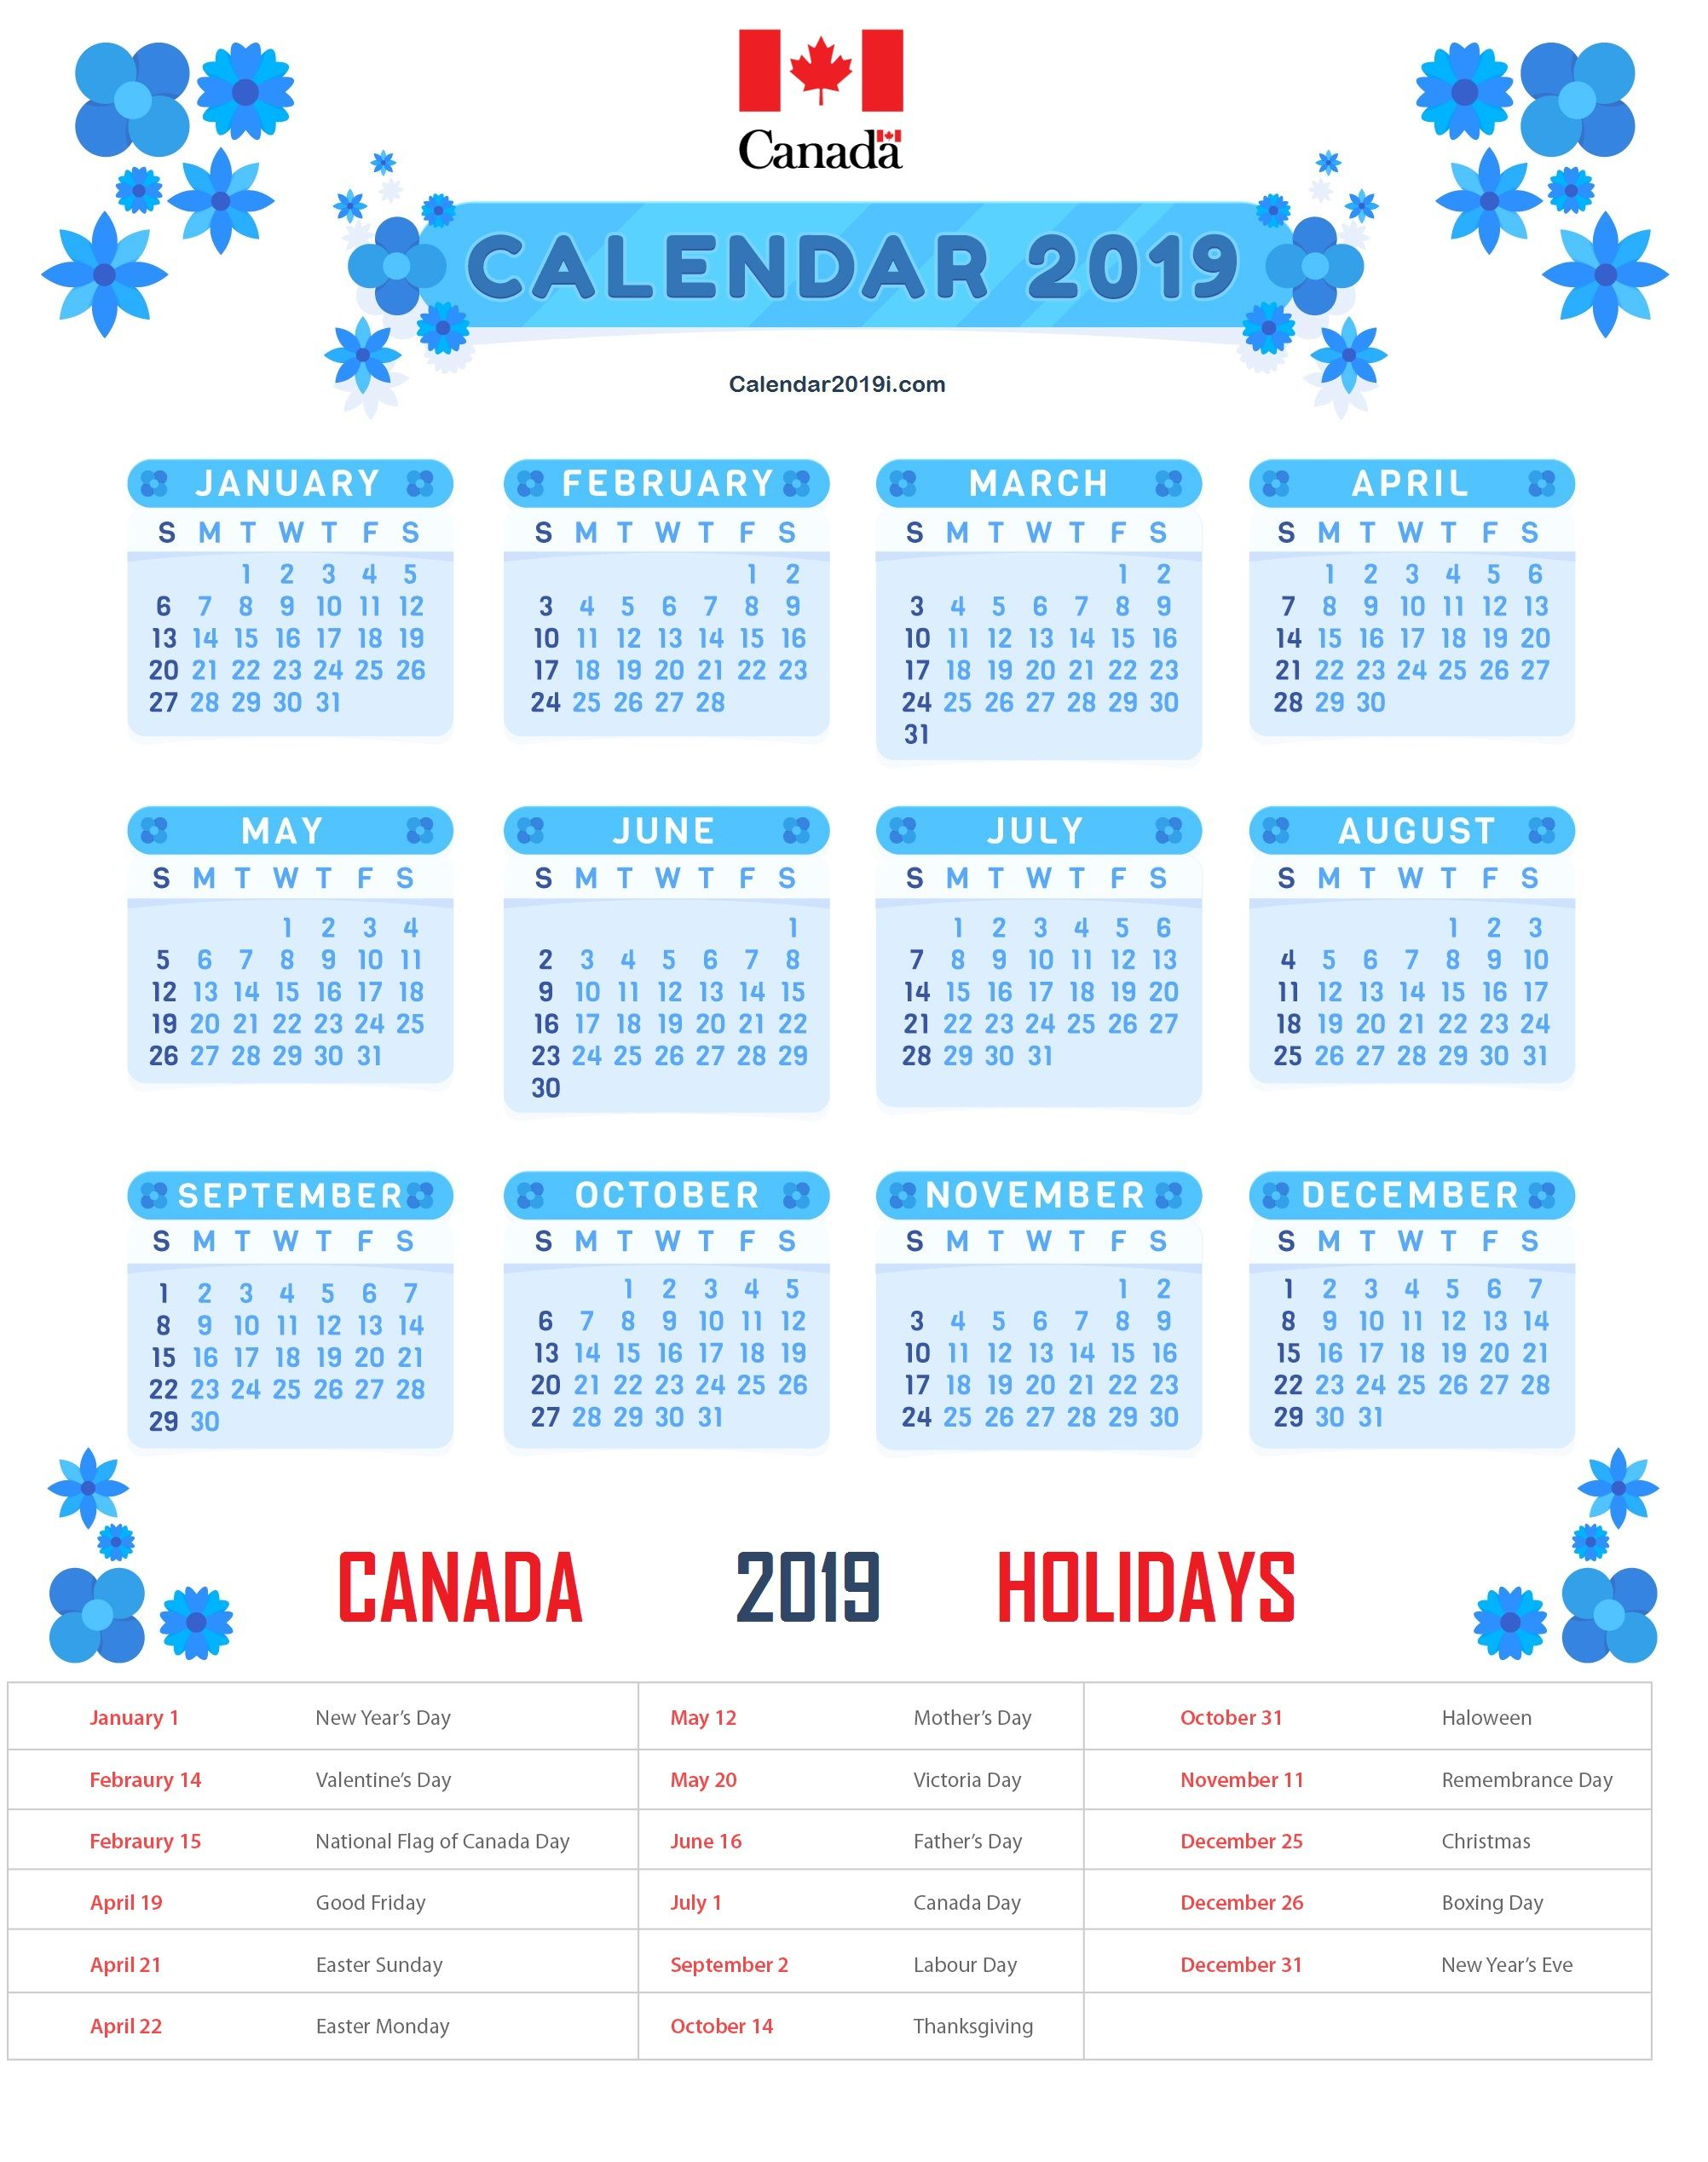 canada holidays calendar 2019 templates printable bank public federal events list